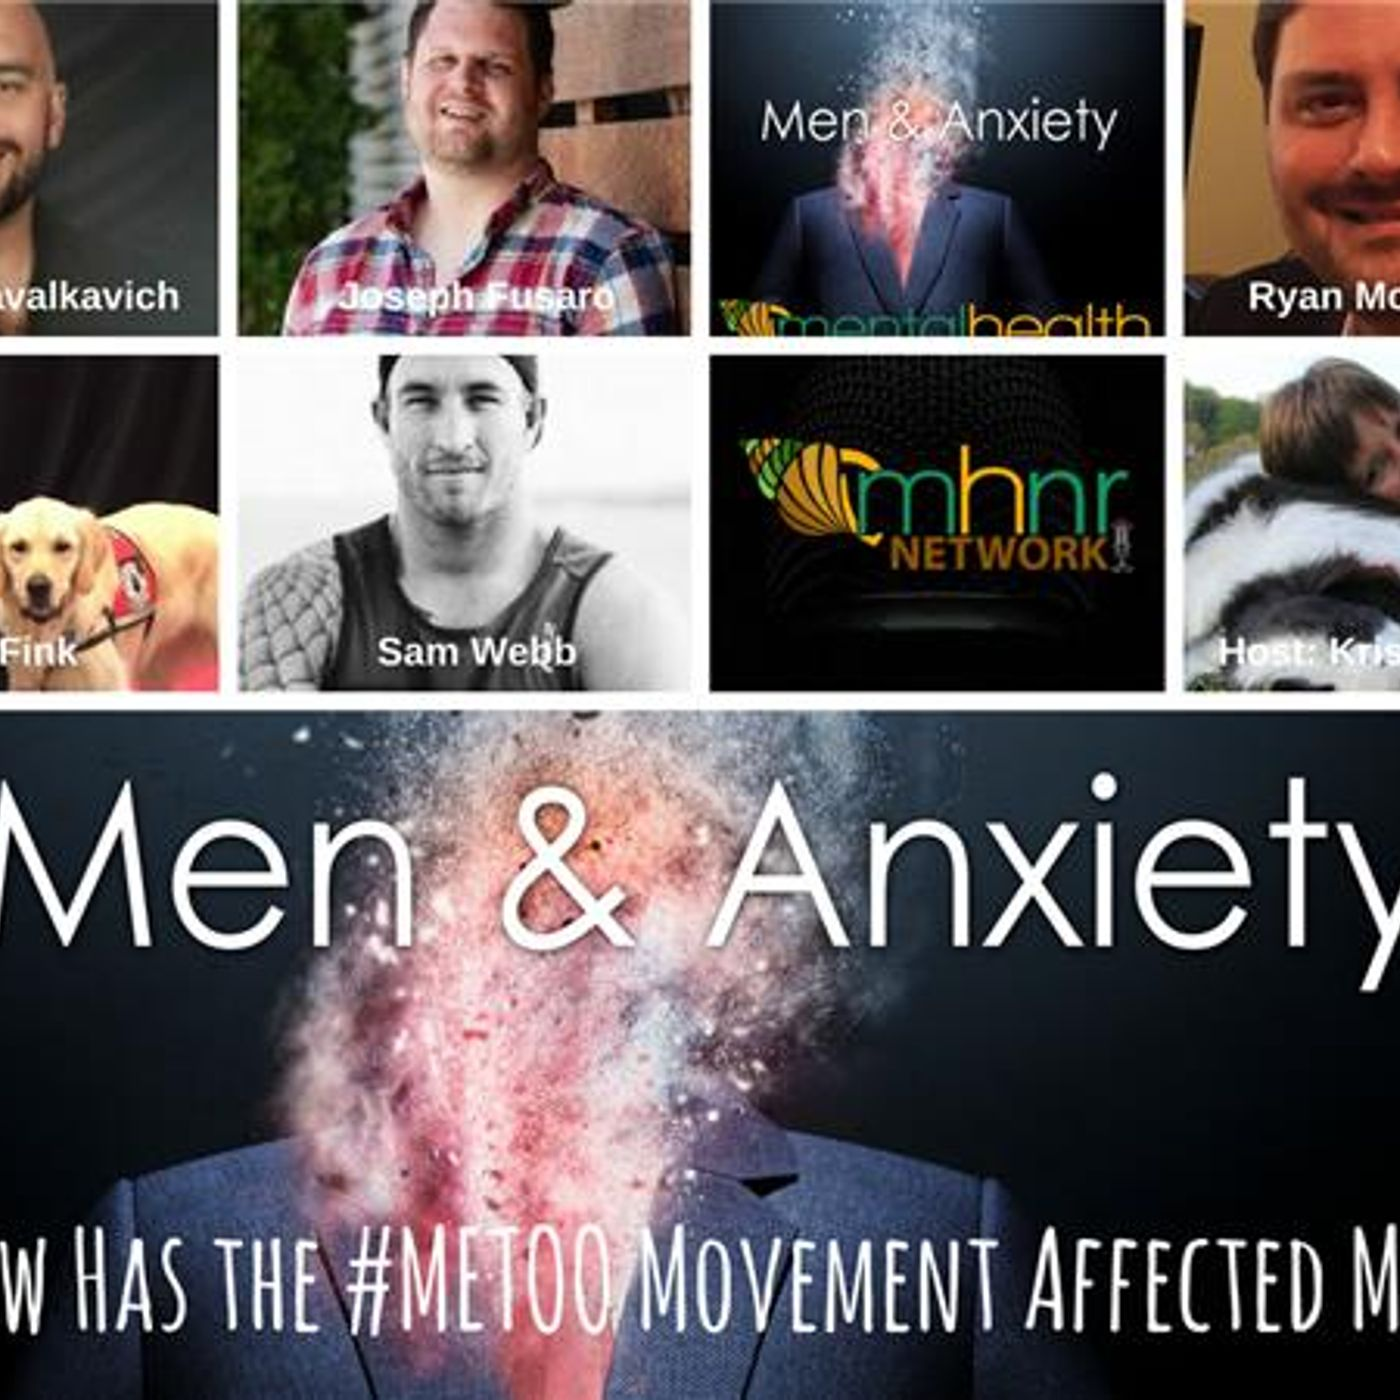 Mental Health News Radio - Men & Anxiety: How Has the #METOO Movement Affected Men?